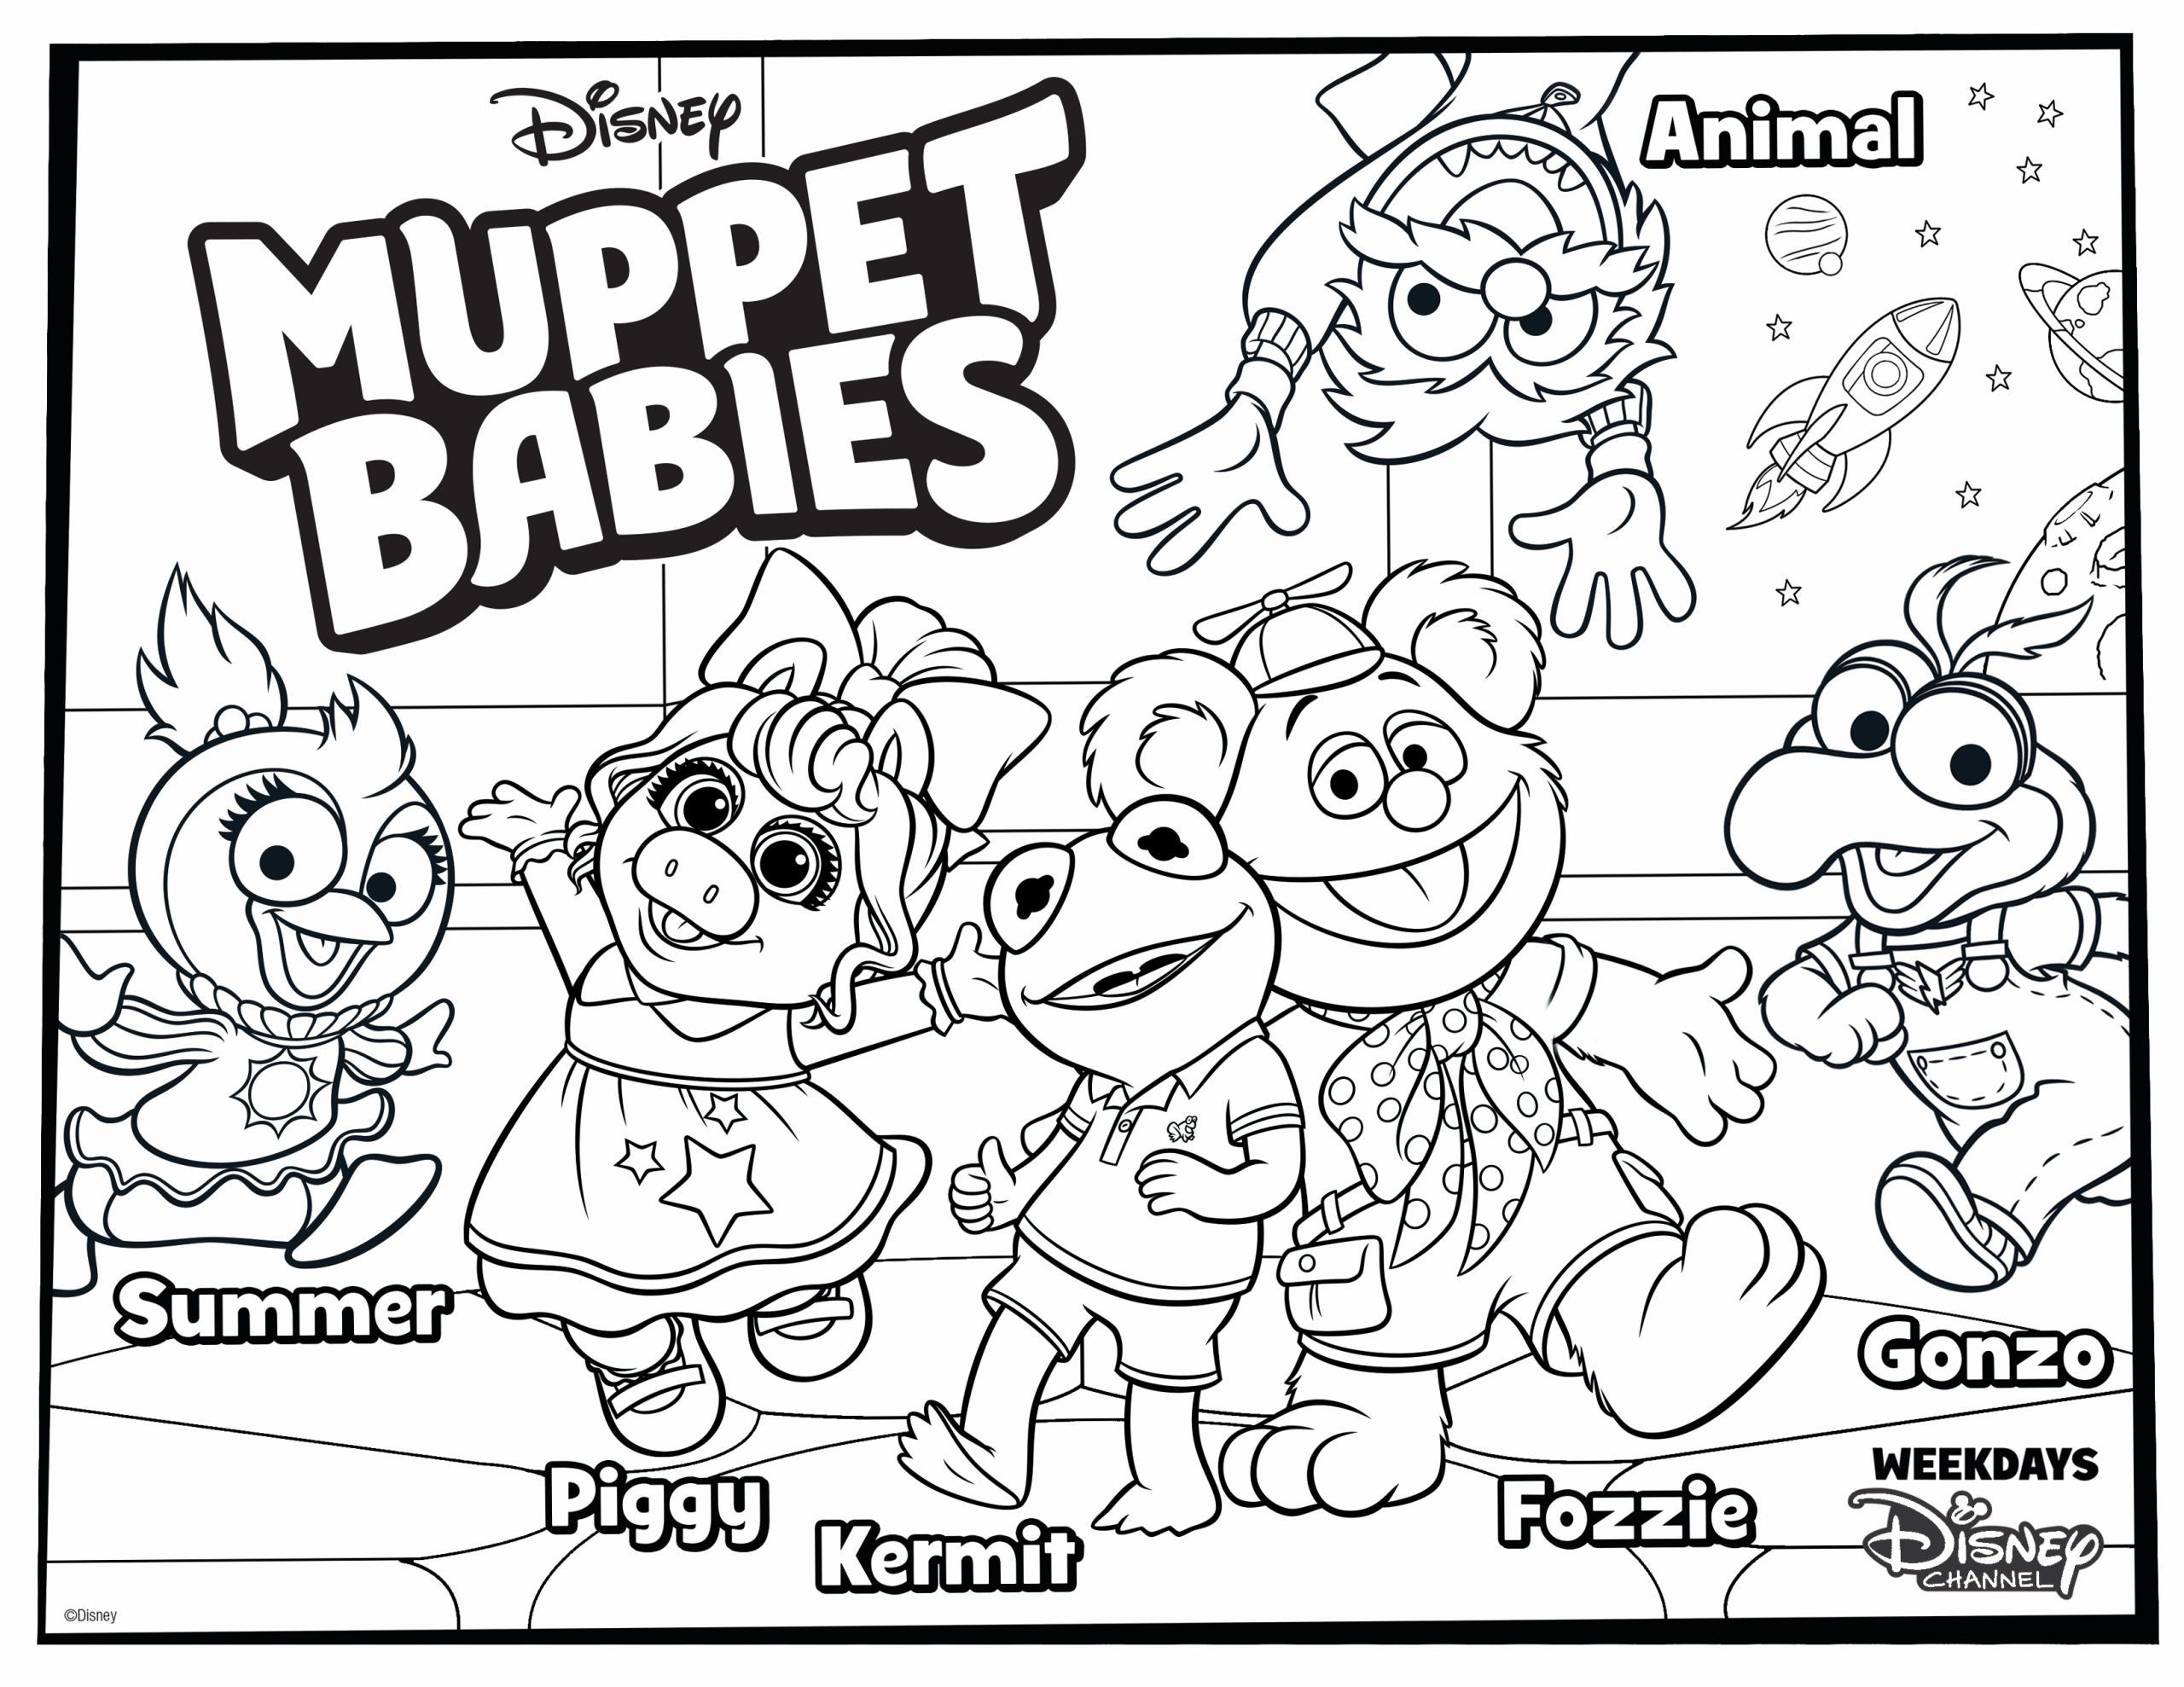 Coloring Book For Baby Inspirational Muppet Babies Coloring Page For Your Kids In 2020 Baby Coloring Pages Muppet Babies Family Coloring Pages